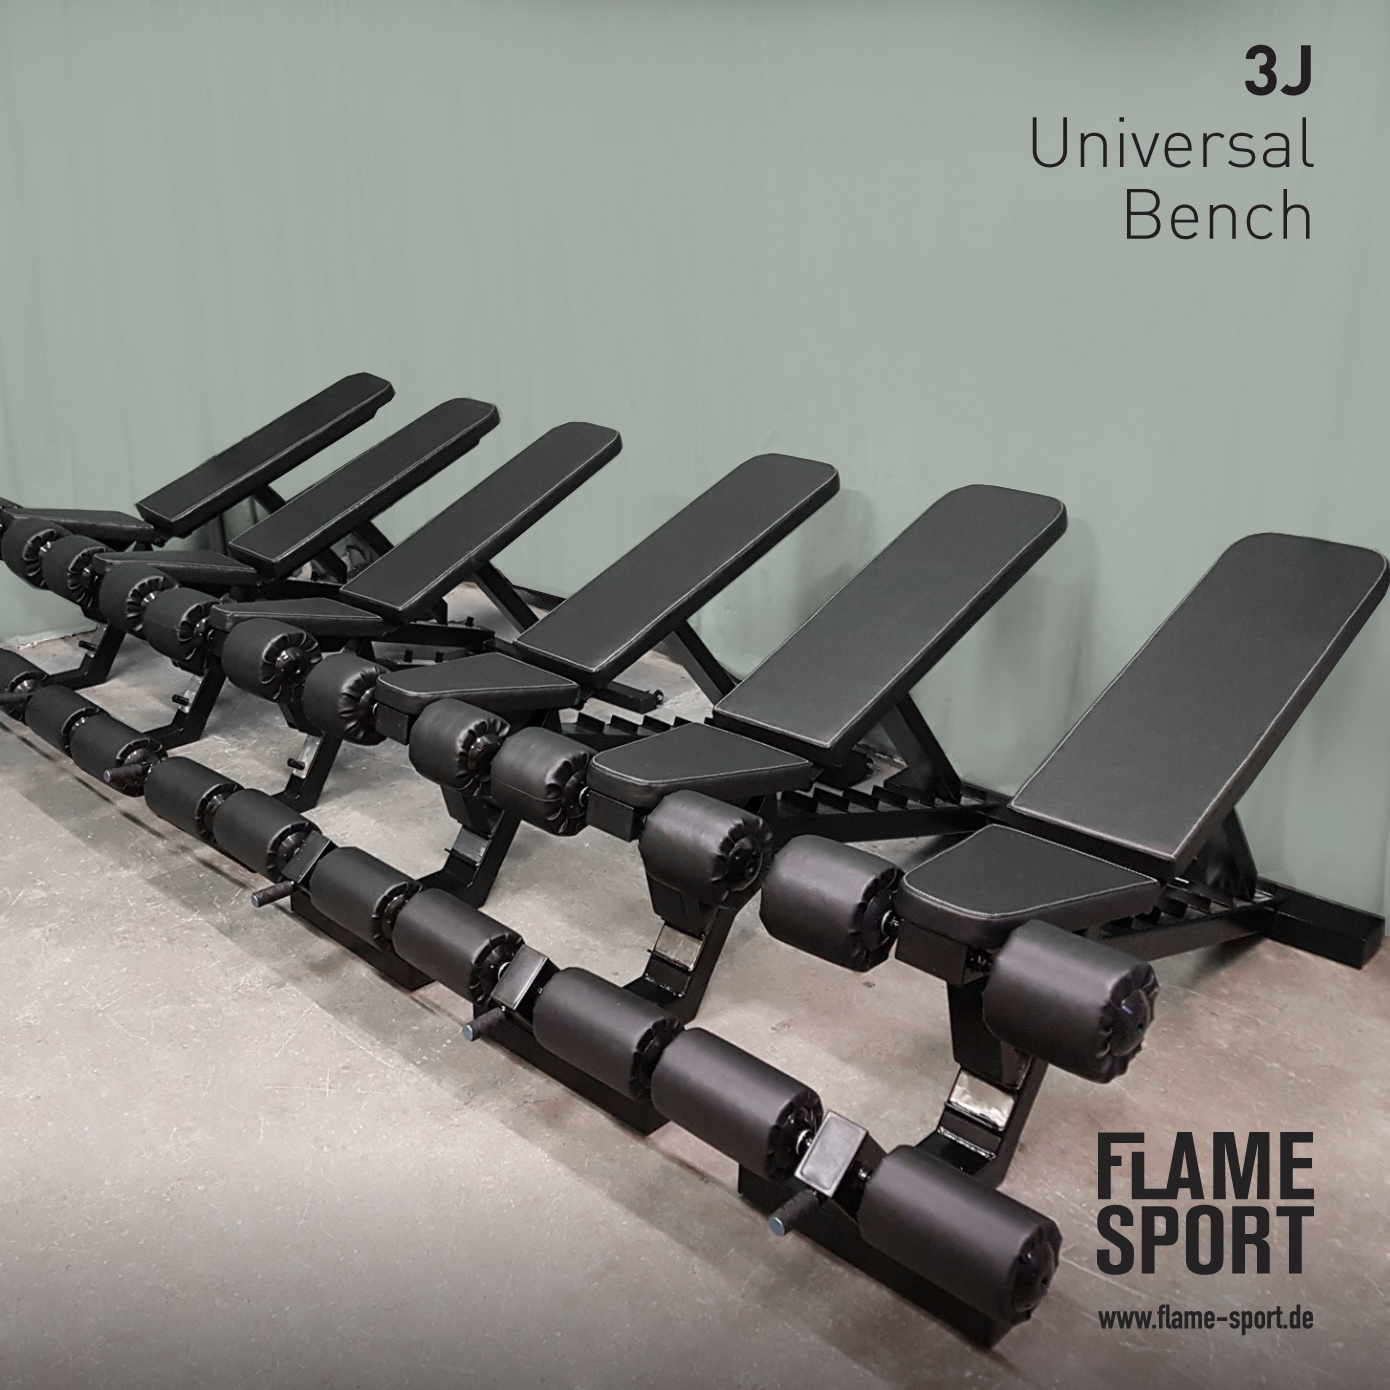 Universal Bench (3J), with transport wheels